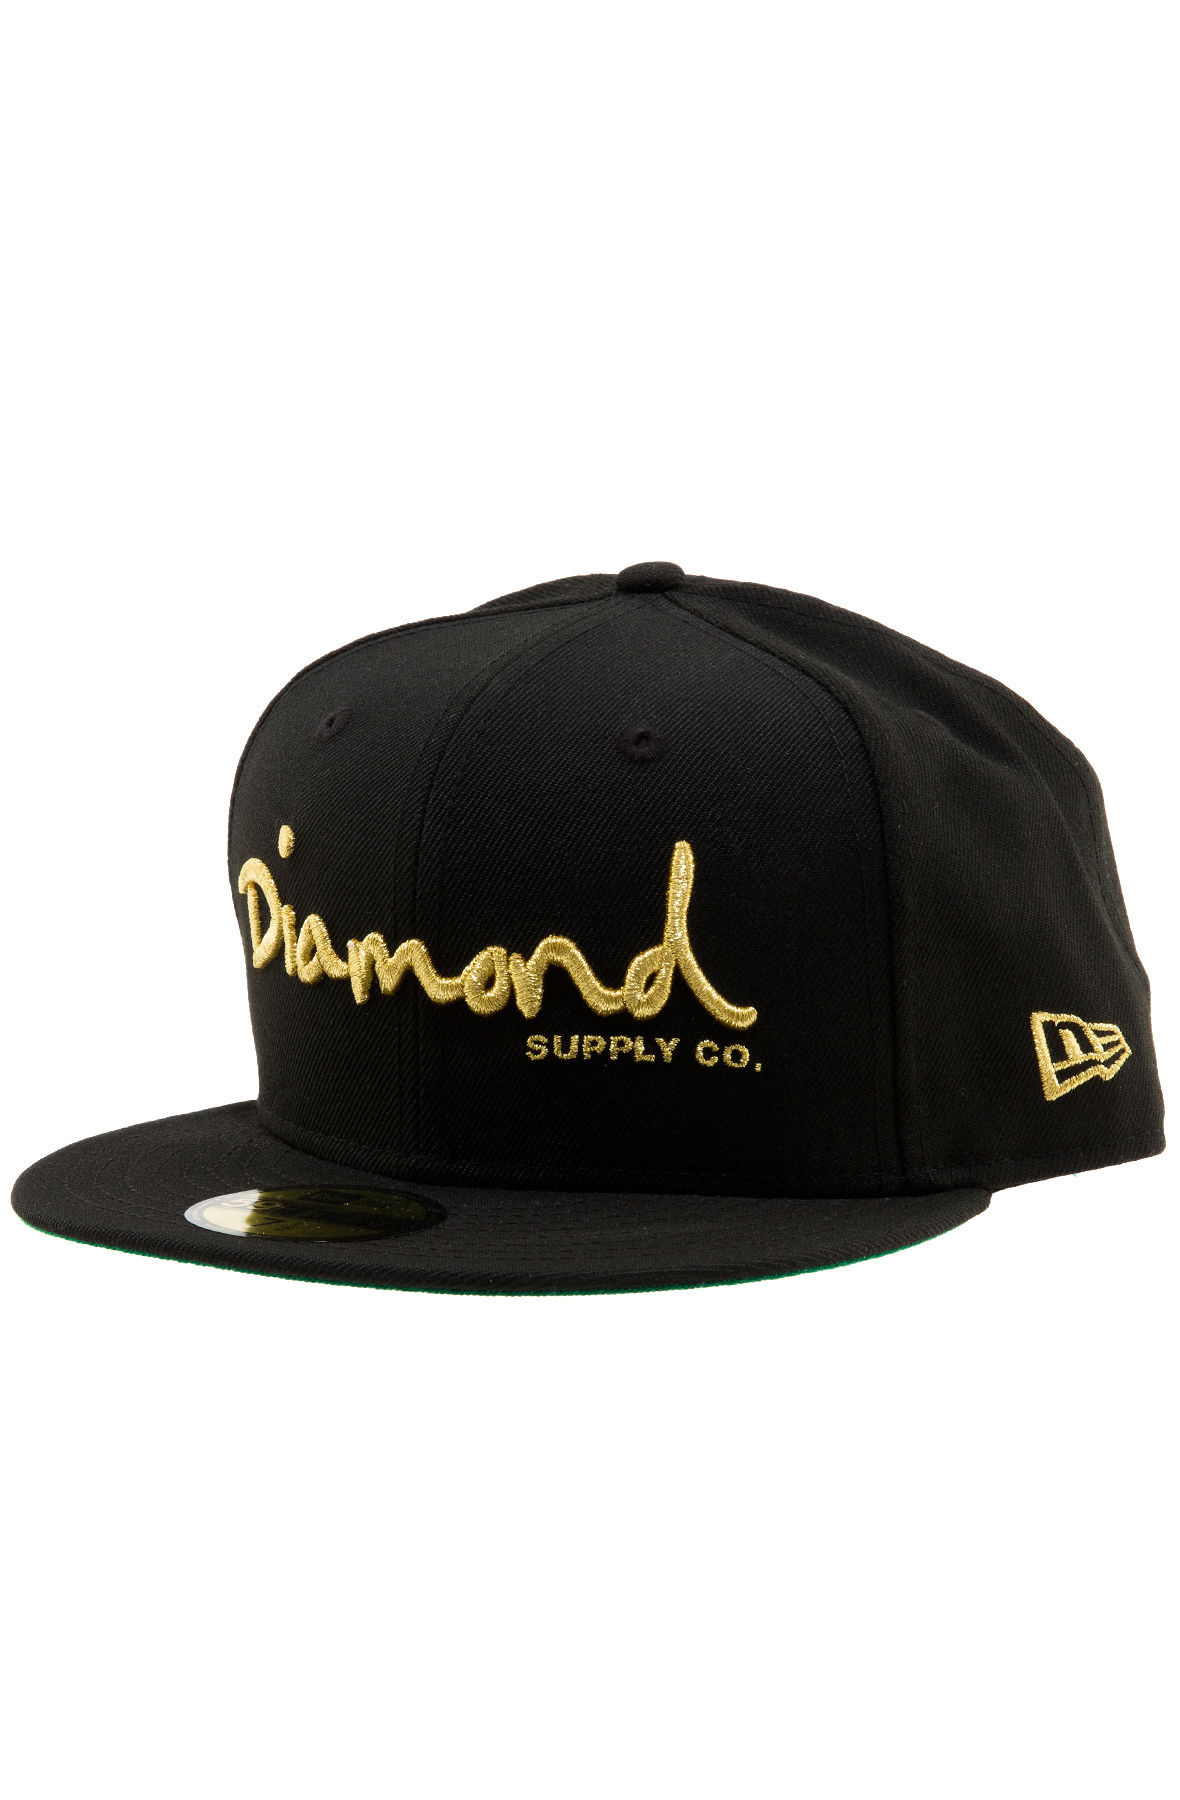 23222ea49f0 Diamond Supply Co. Hat OG Script Fitted Black